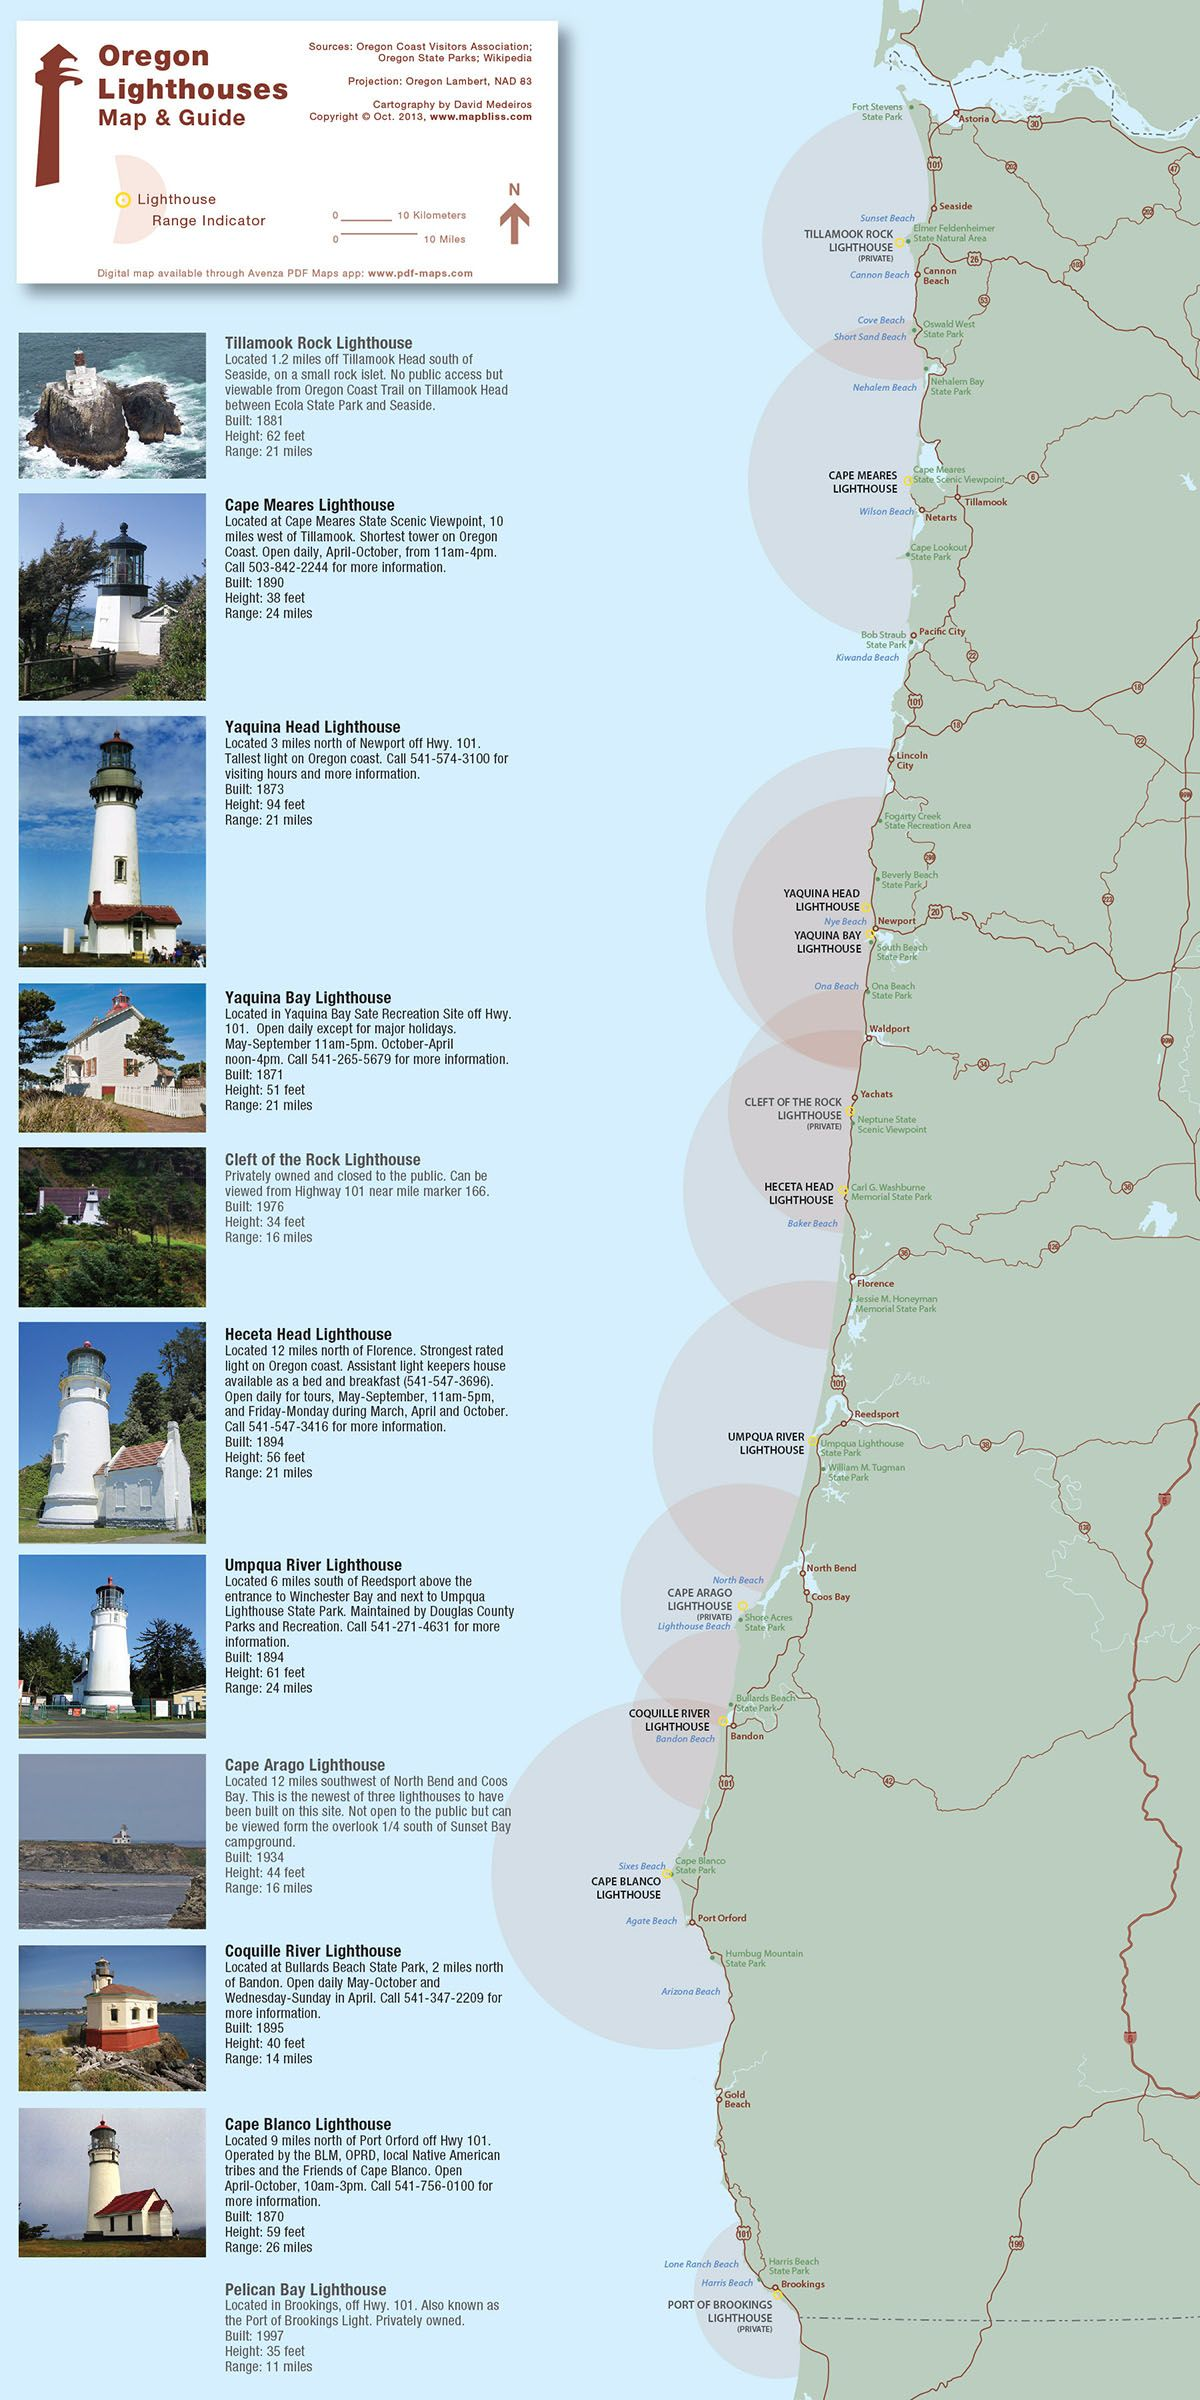 Oregon Lighthouses Map Oregon Lighthouses | Illustrated map showing location, range